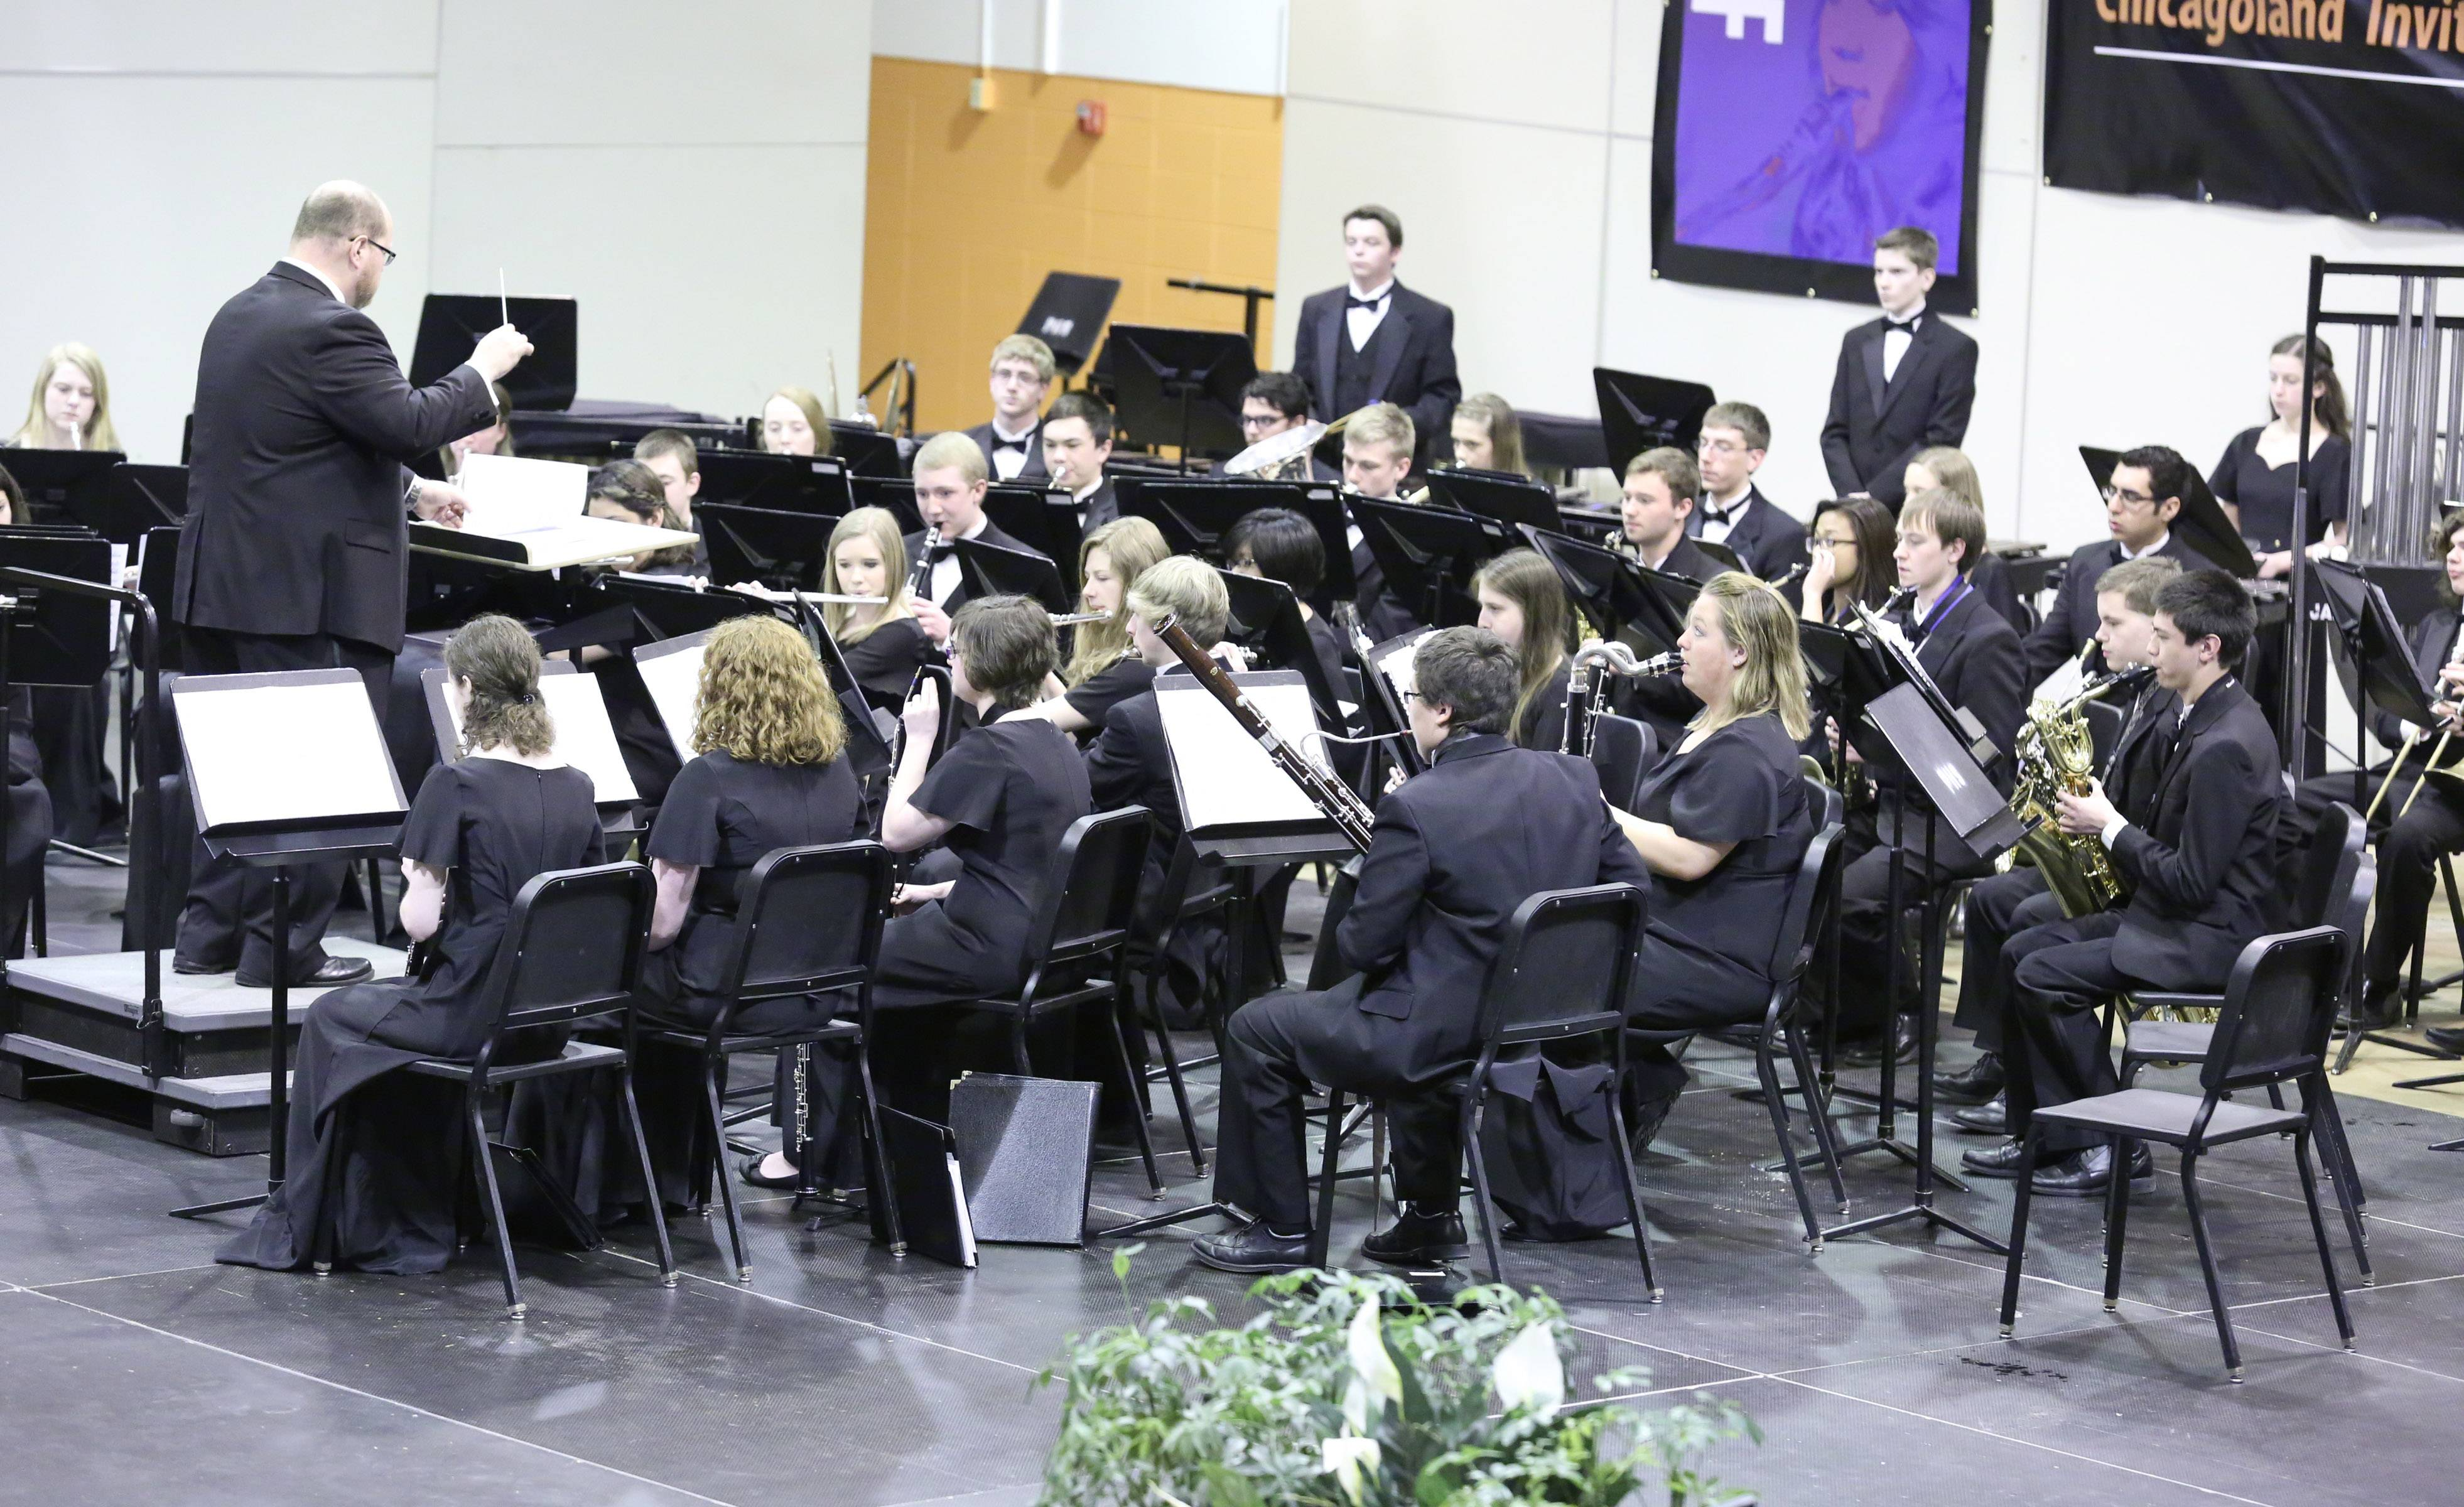 About 40 school bands from across the suburbs won an invitation to the concert, including Mundelein High School's wind ensemble.